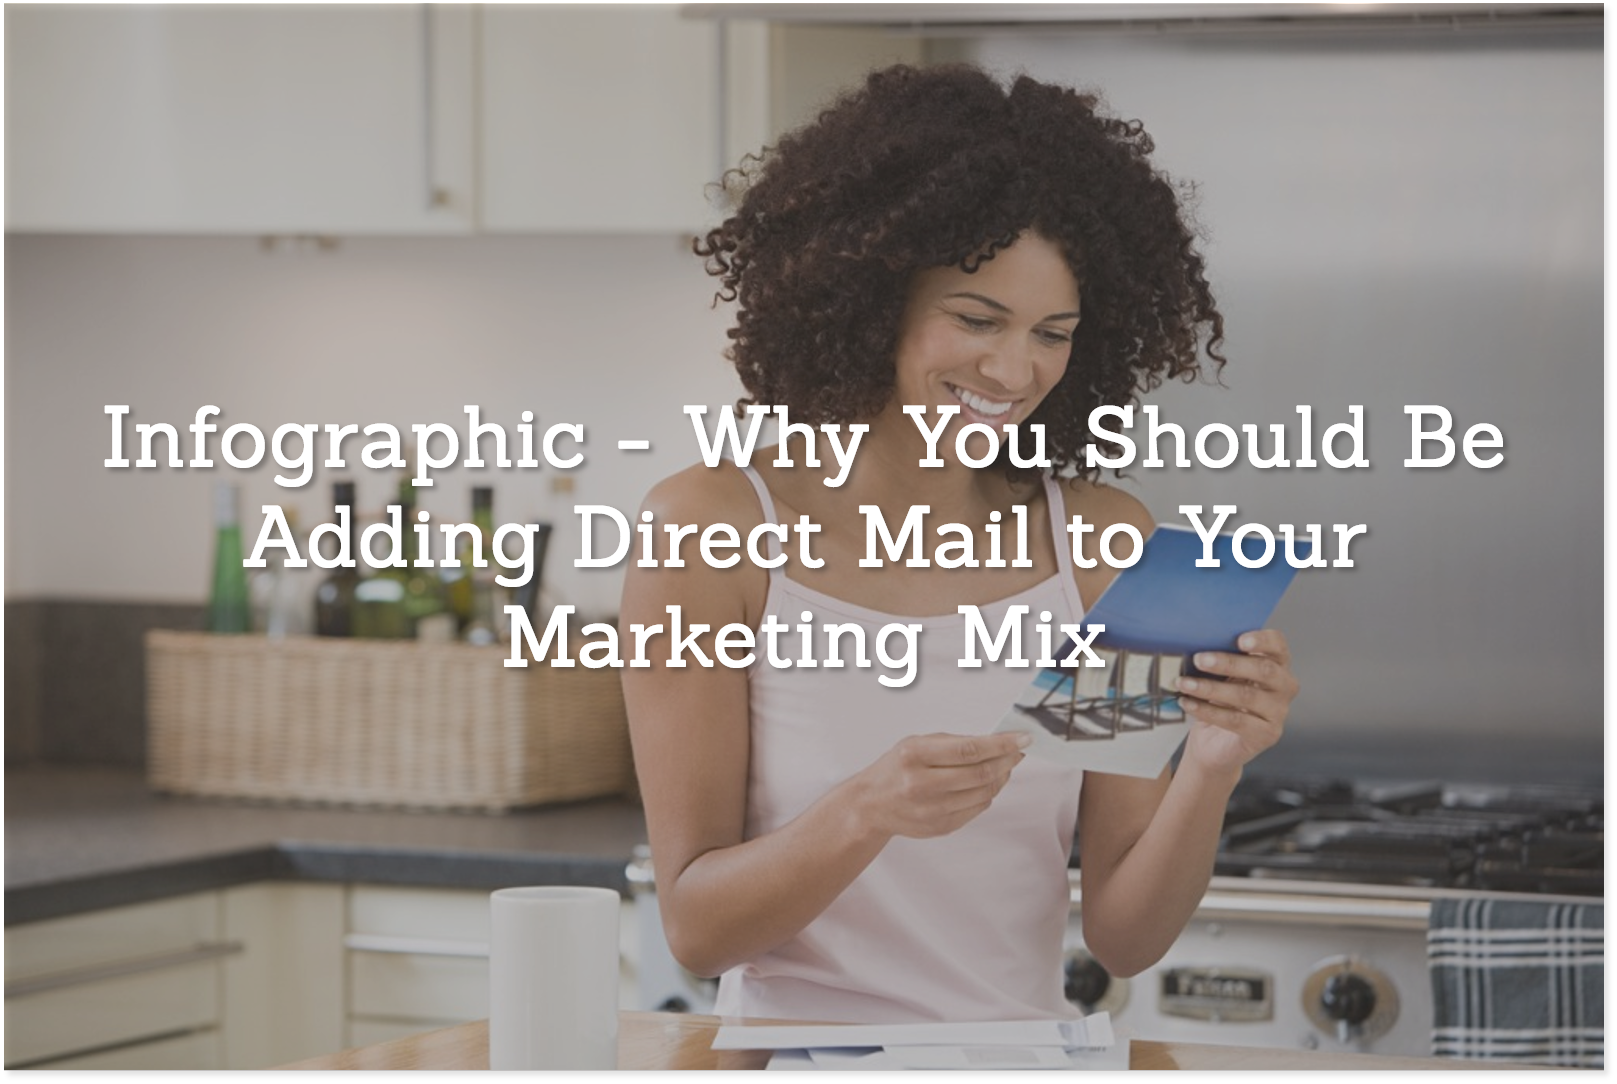 Infographic- DM to Marketing Mix